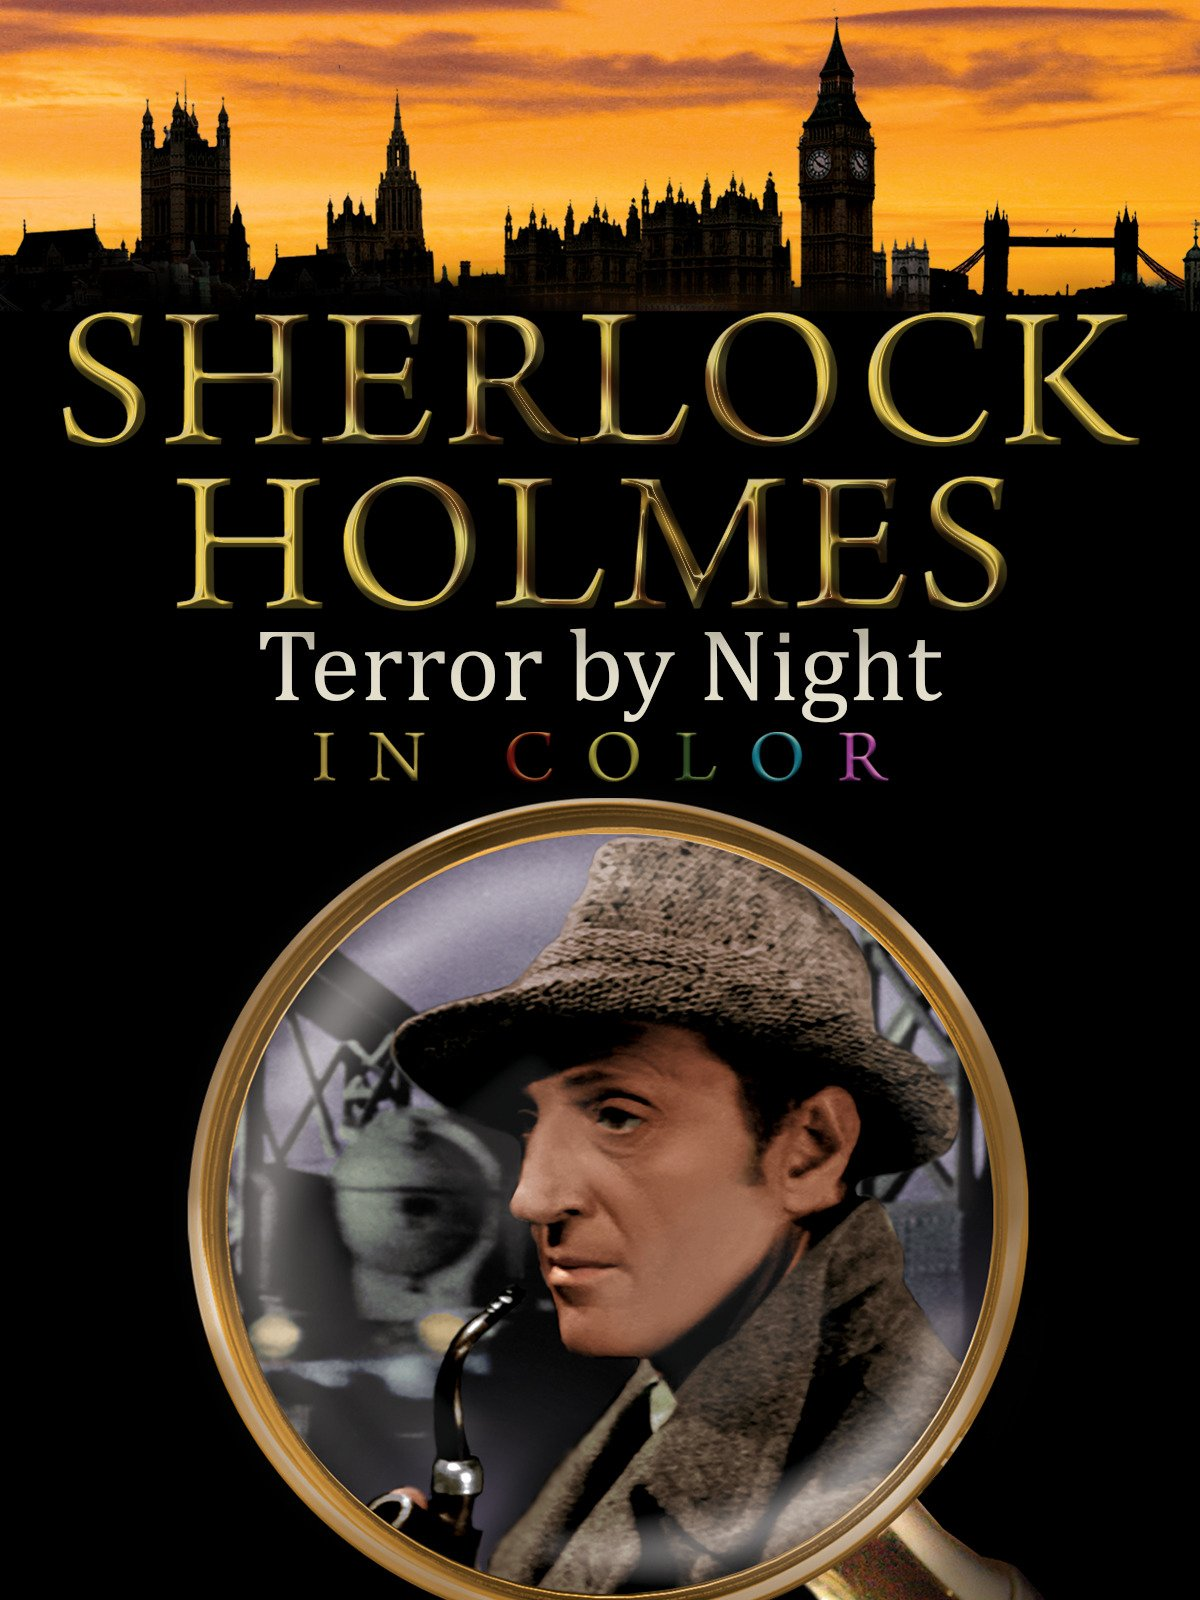 Sherlock Holmes: Terror by Night (in Color)